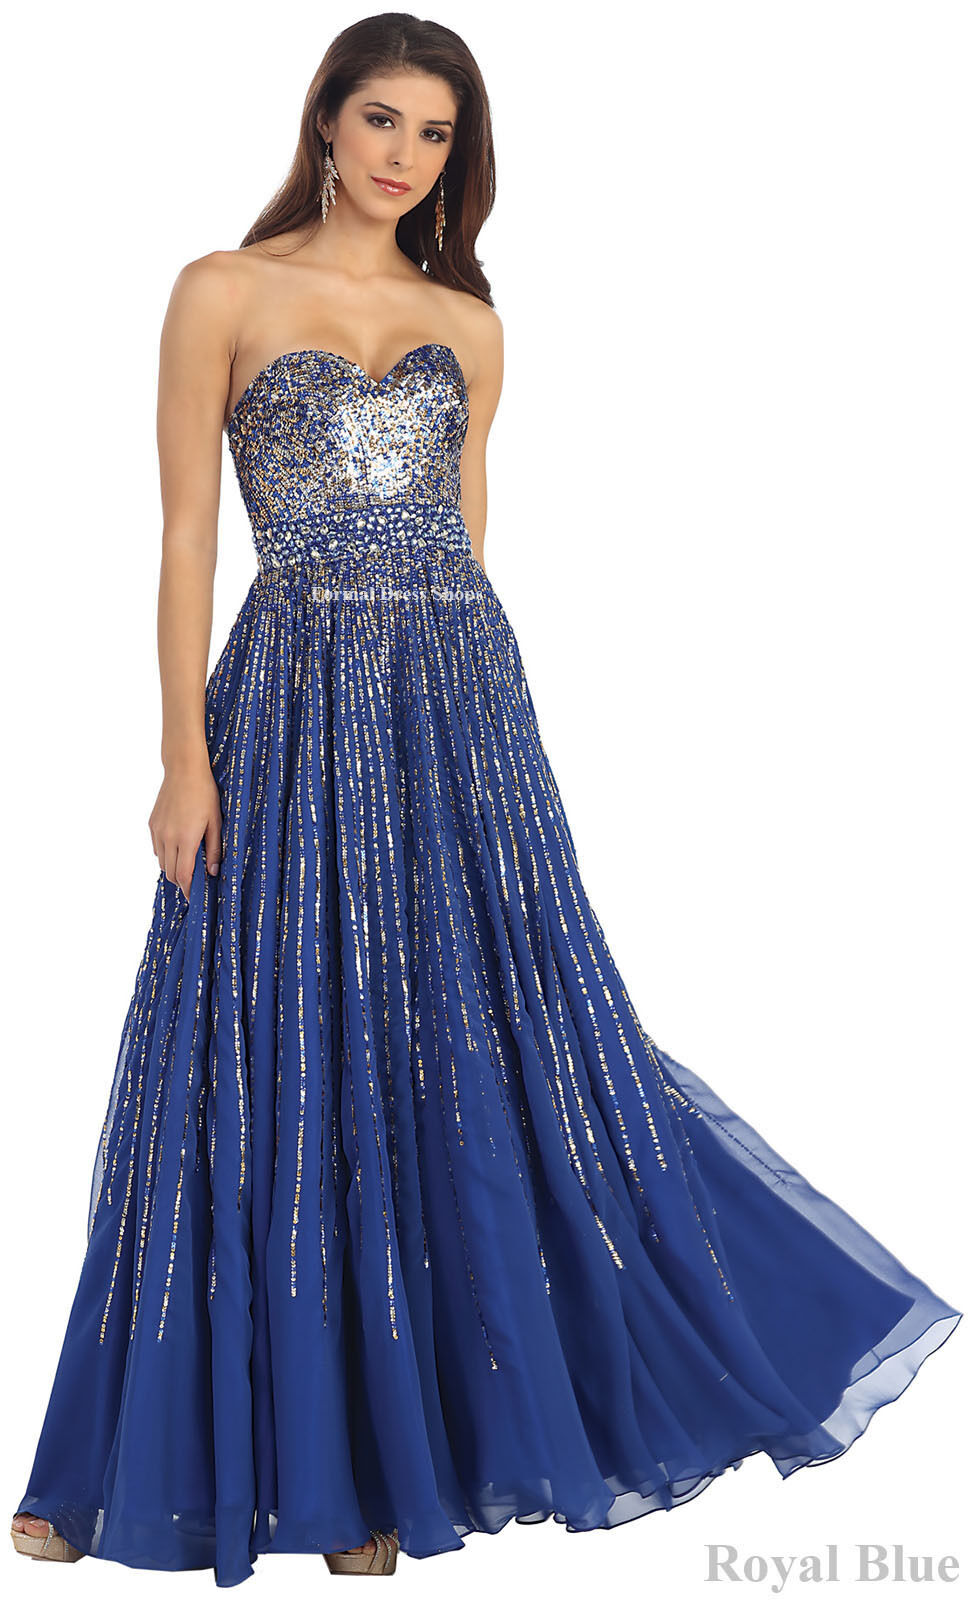 SALE ! FLOWY ROMAN GODDESS EVENING GOWN PROM PAGEANT SWEET 16 ...